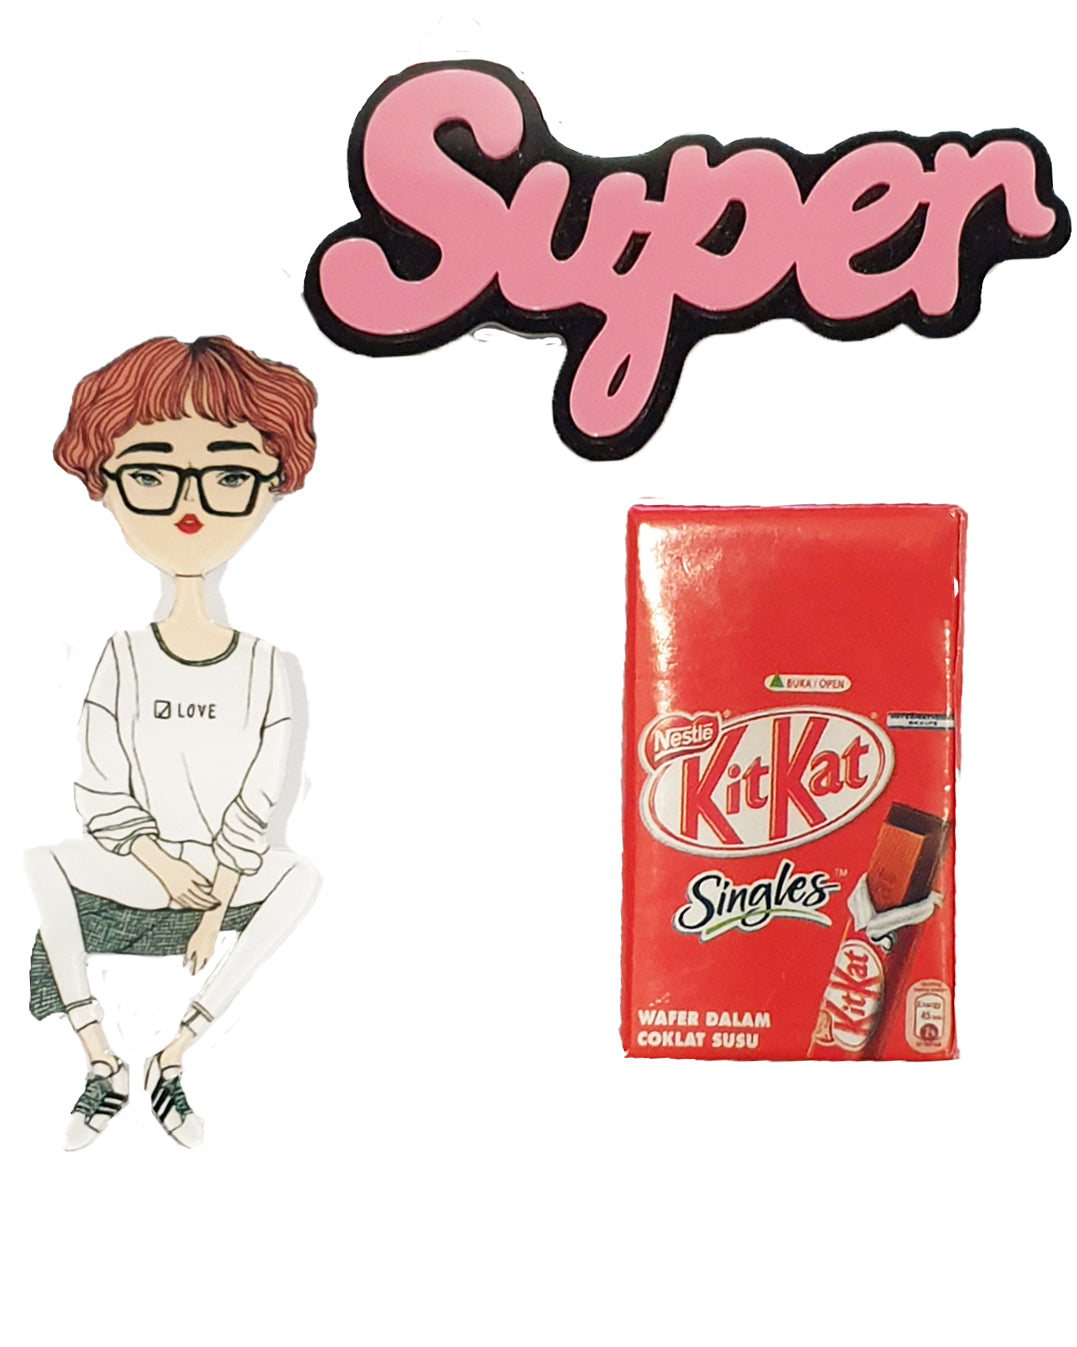 Kit Kat Super x 3 Pin